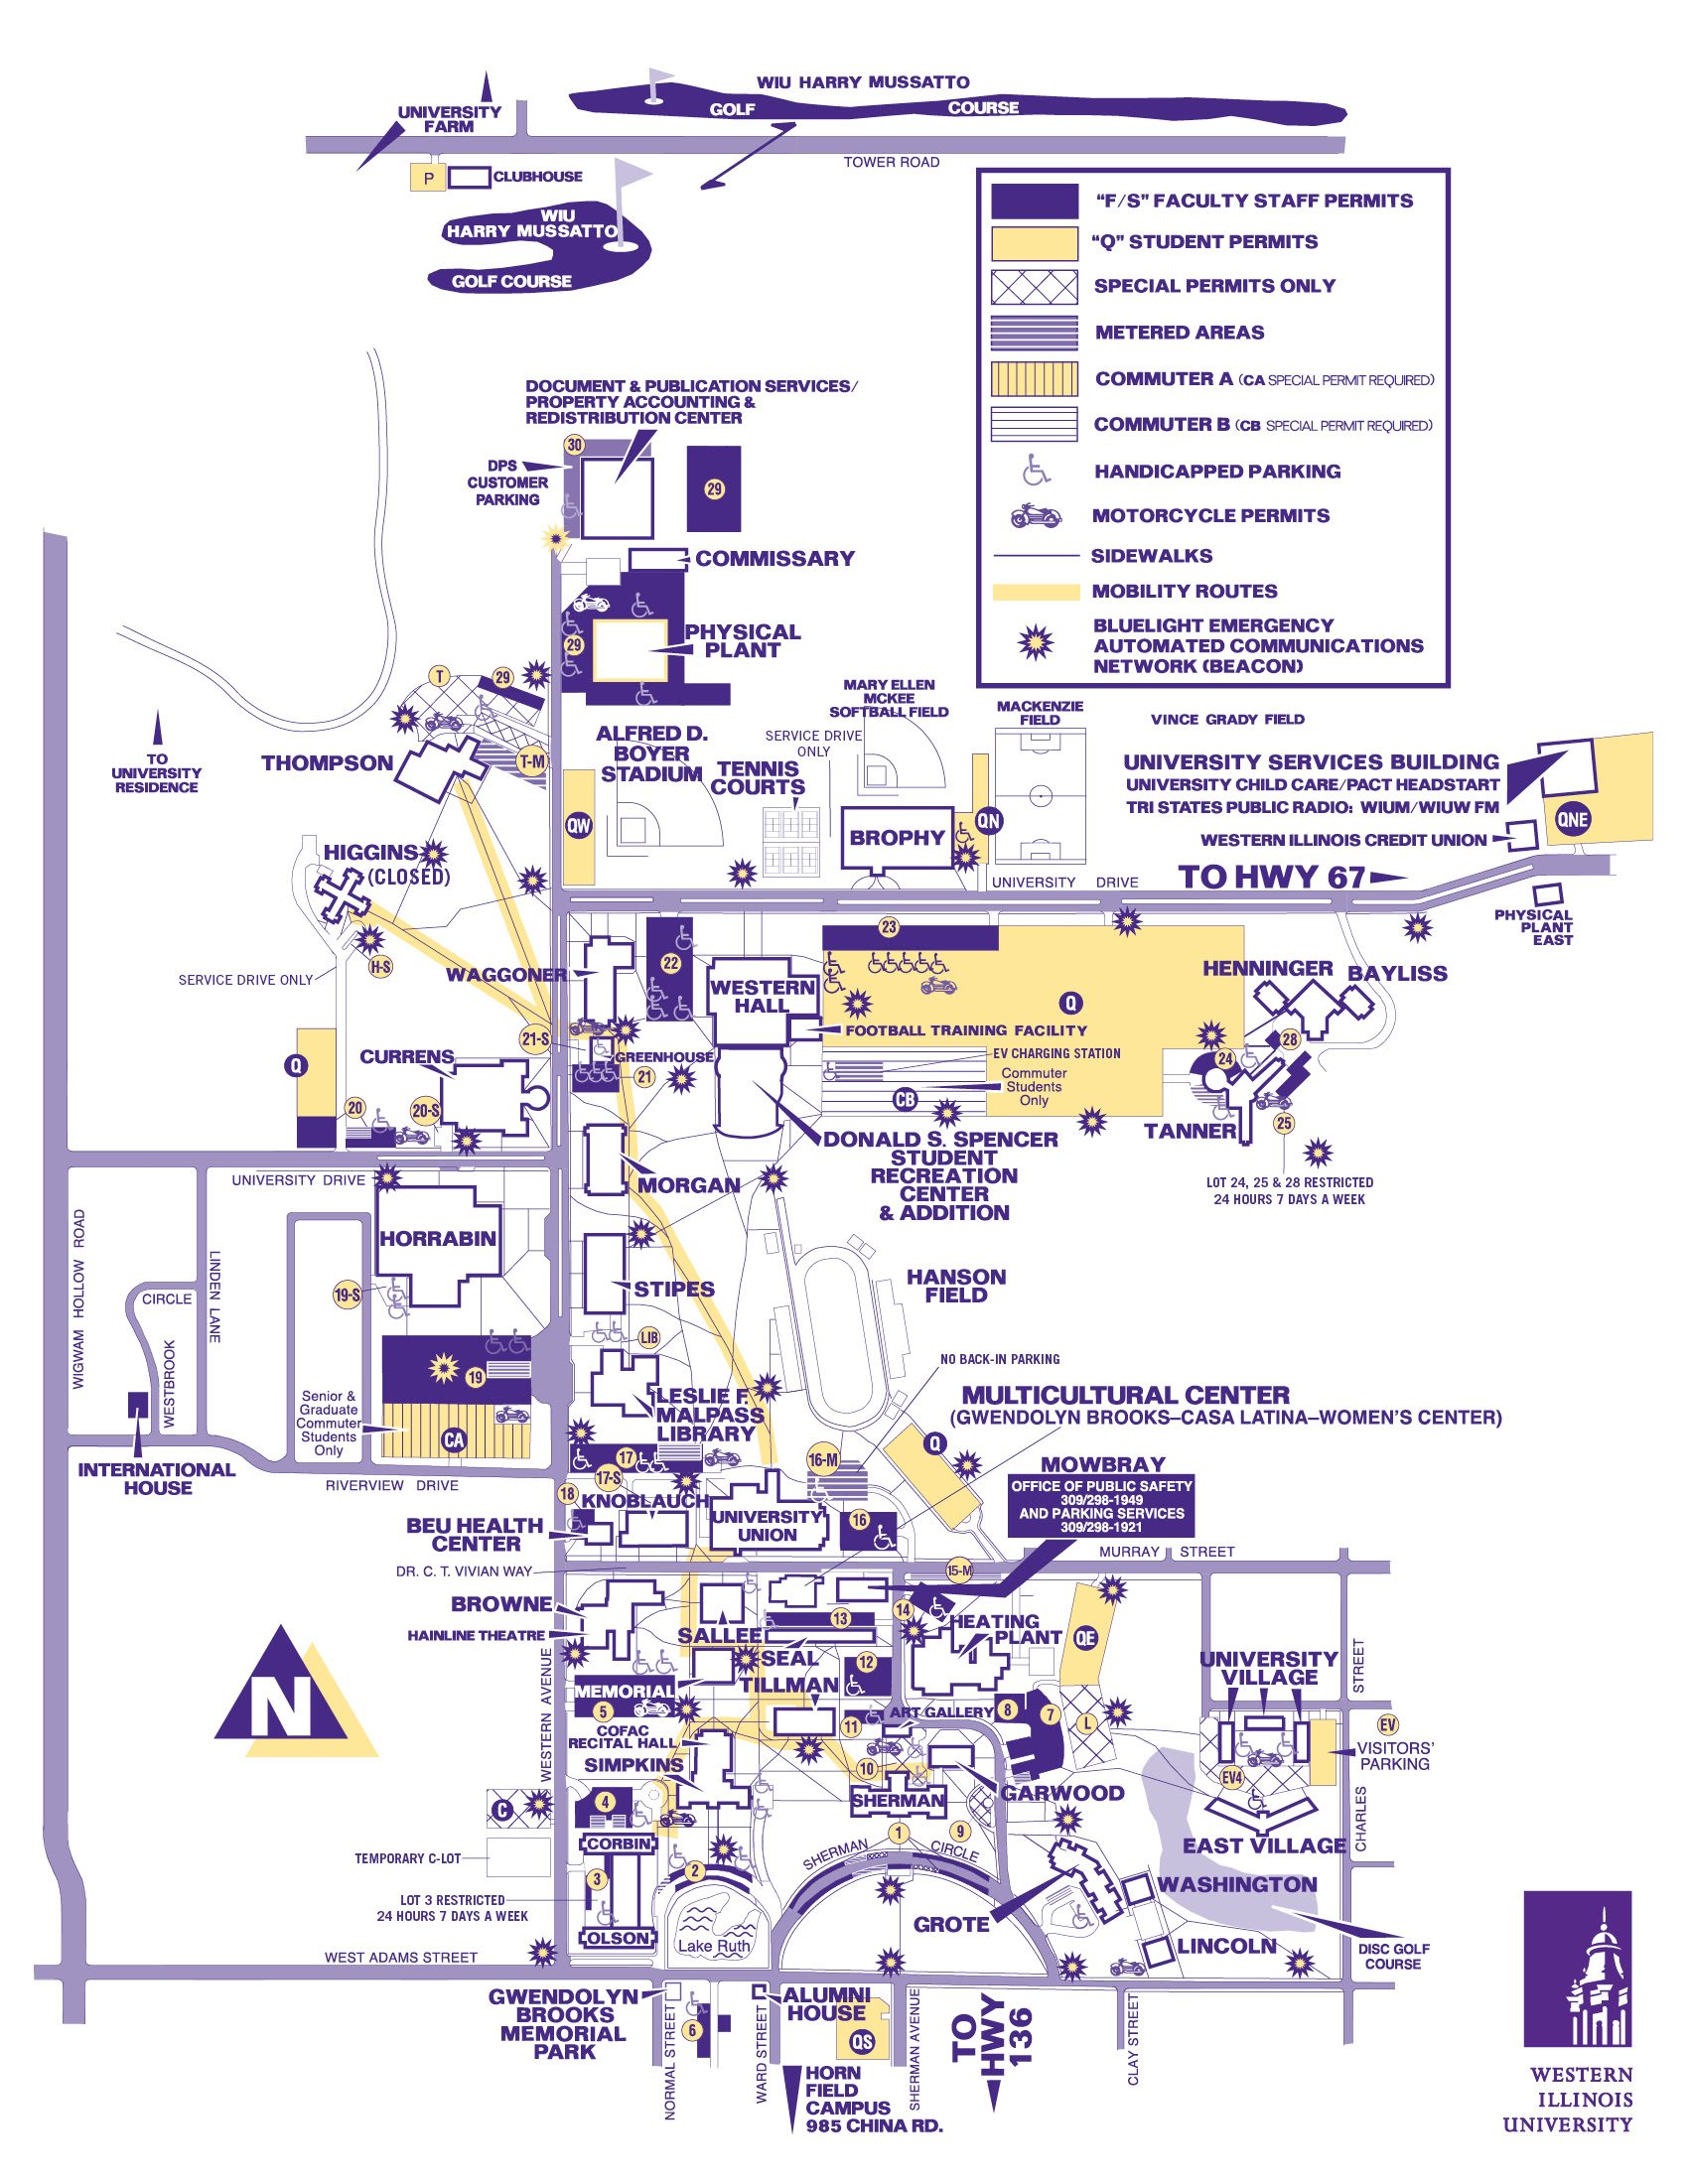 Macomb Campus Map   Map Of Us Western States on wayne state university campus map, south plains college campus map, missouri western campus map, broward college south campus map, ecc south campus map, nova cc medical campus map, macomb center campus map basic, community hospital south campus map, south davis recreation center map, springfield college campus map, south mountain community college map, south suburban college campus map, tarrant county college south campus map, college of marin campus map, bates technical college south campus map, delta college michigan campus map, spokane falls community college building map, michigan community colleges map,